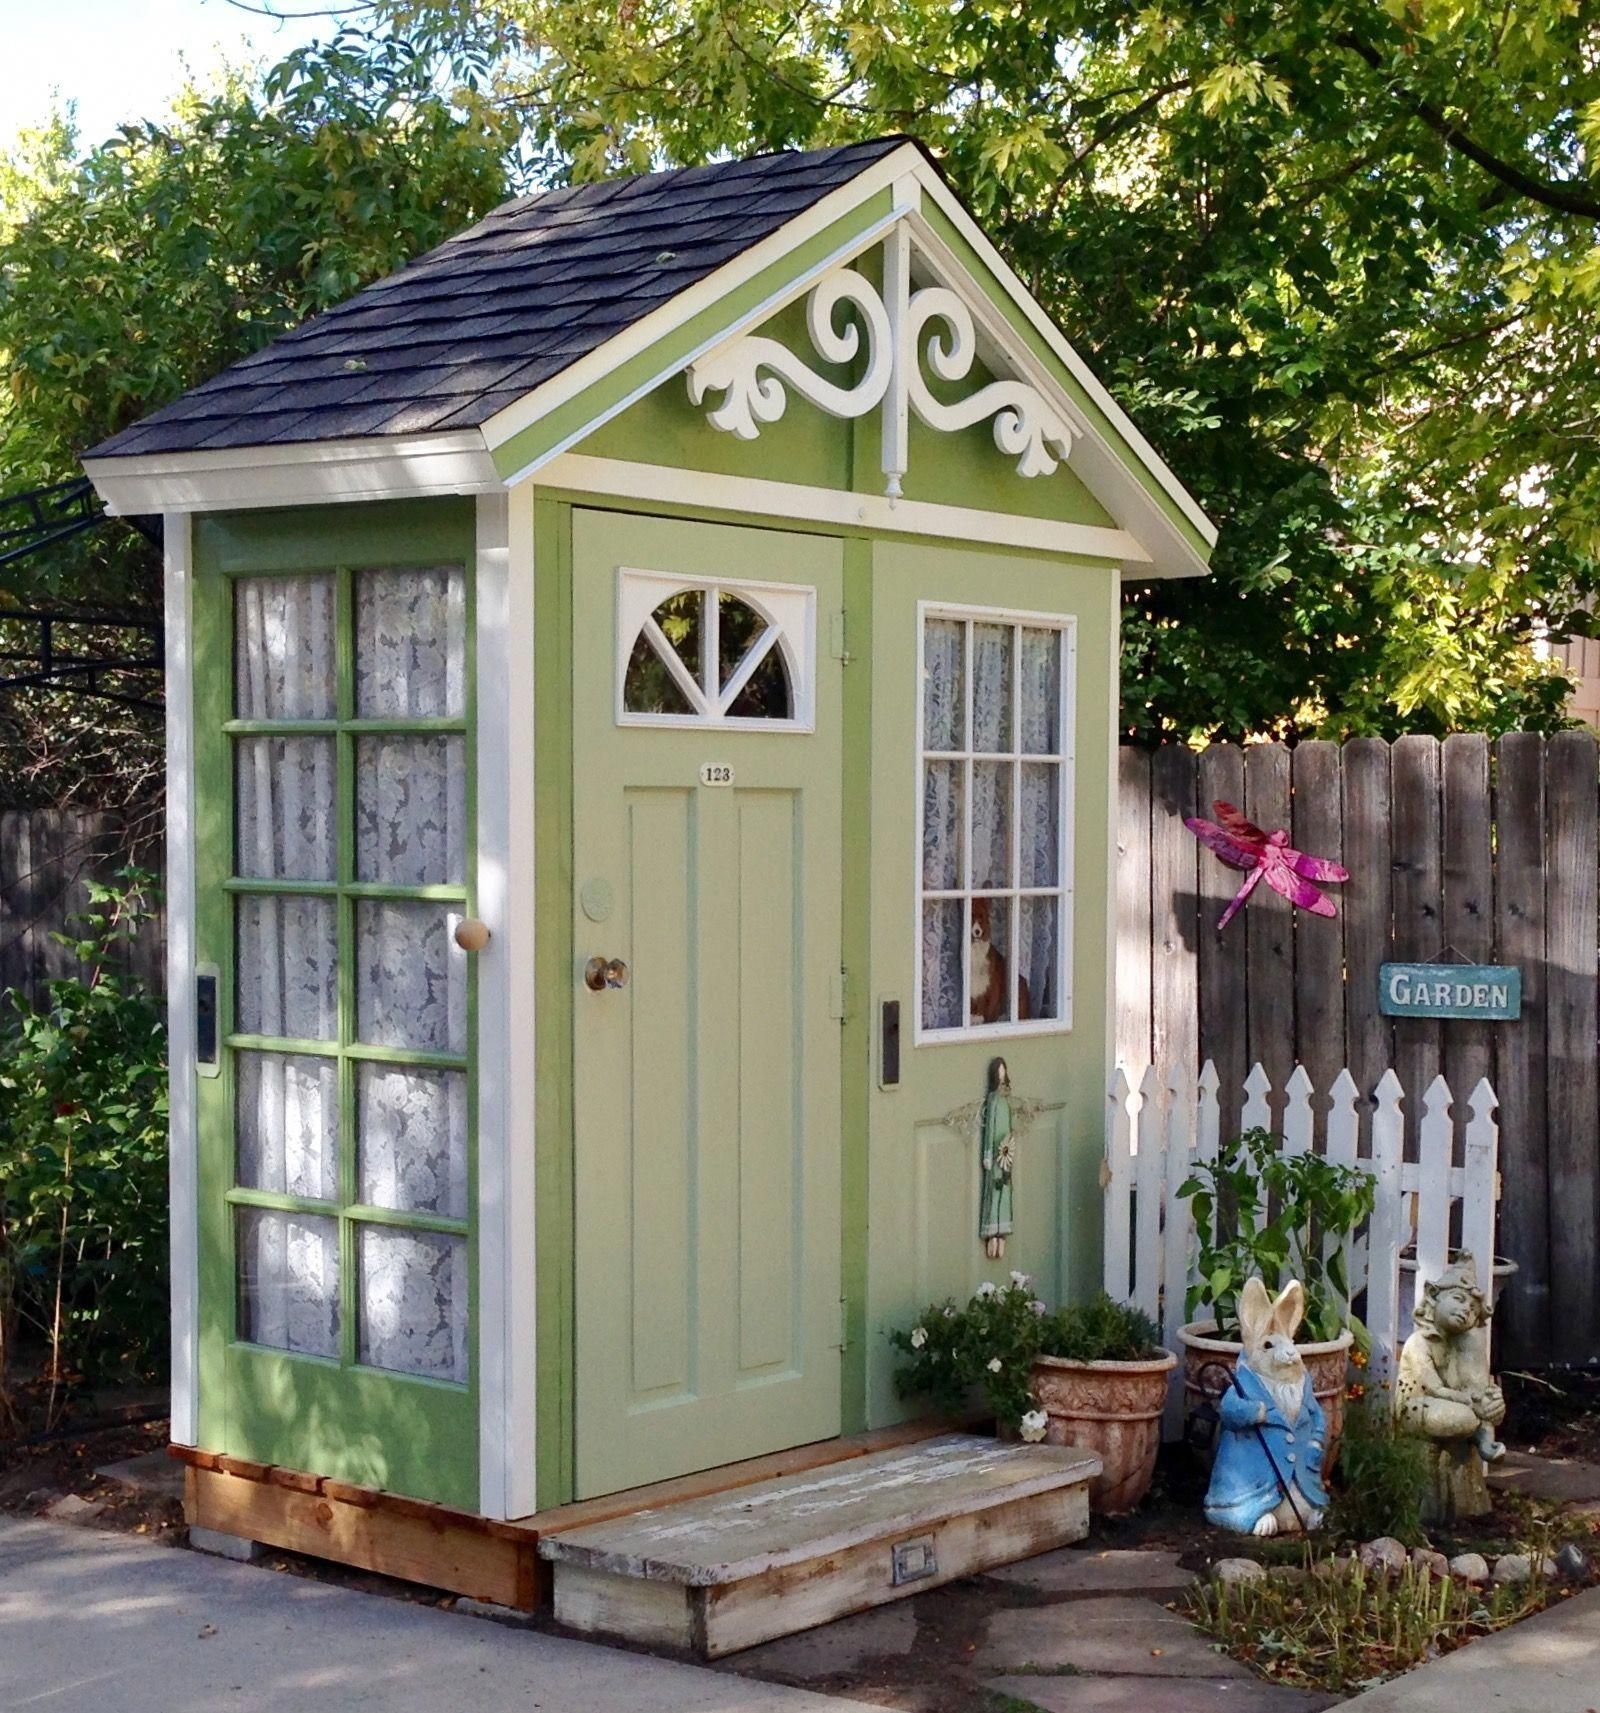 My Garden Shed. My Husband Built This Out Of Old Doors. I